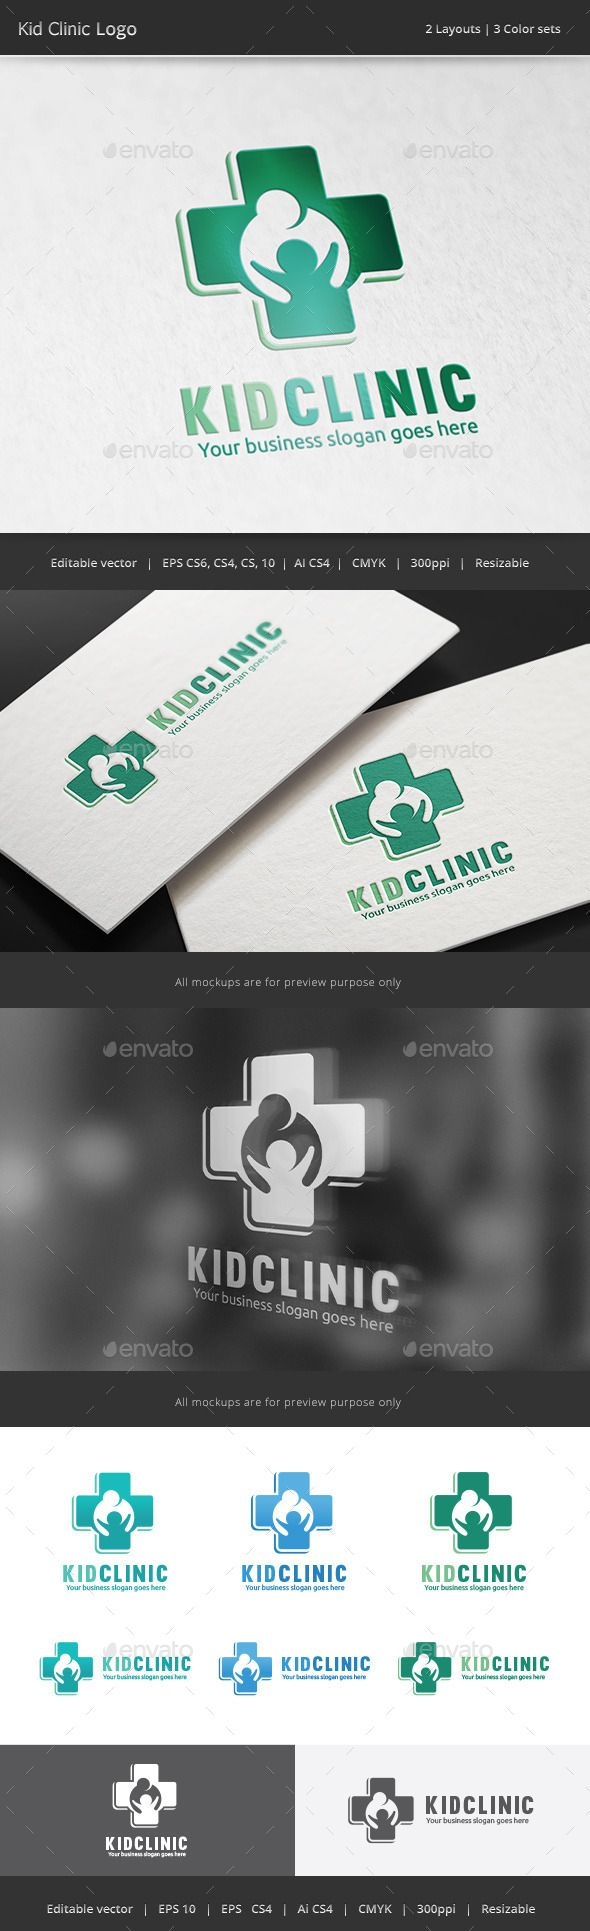 Kid Clinic Logo Template Vector EPS, AI. Download here: http://graphicriver.net/item/kid-clinic-logo/12479711?ref=ksioks